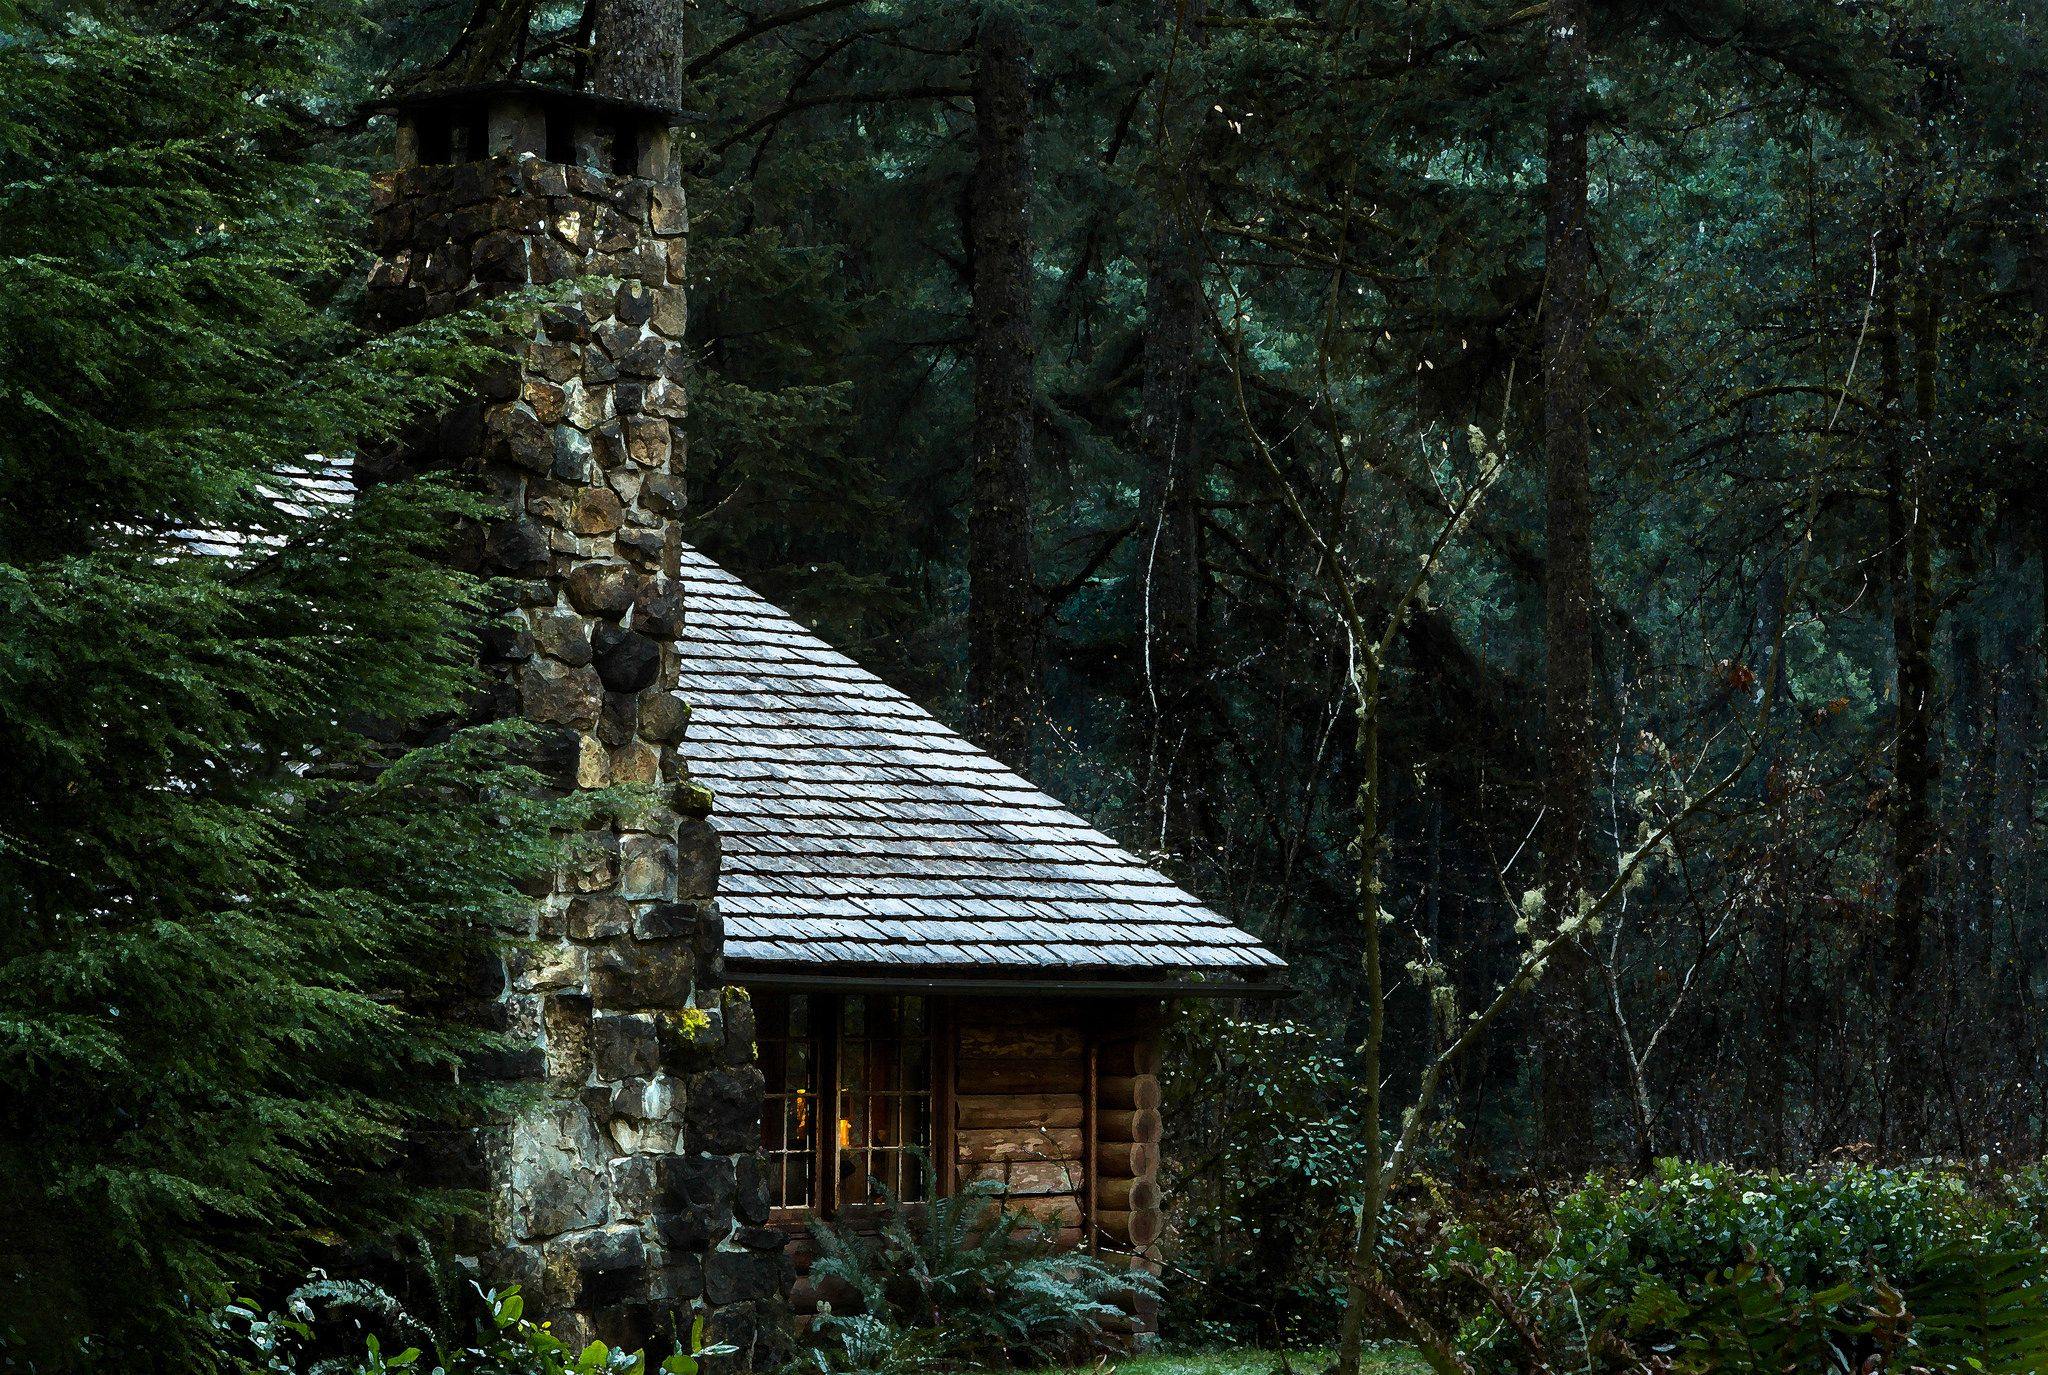 Genial 5 Oregon State Parks That Offer Cabin And Yurt Camping